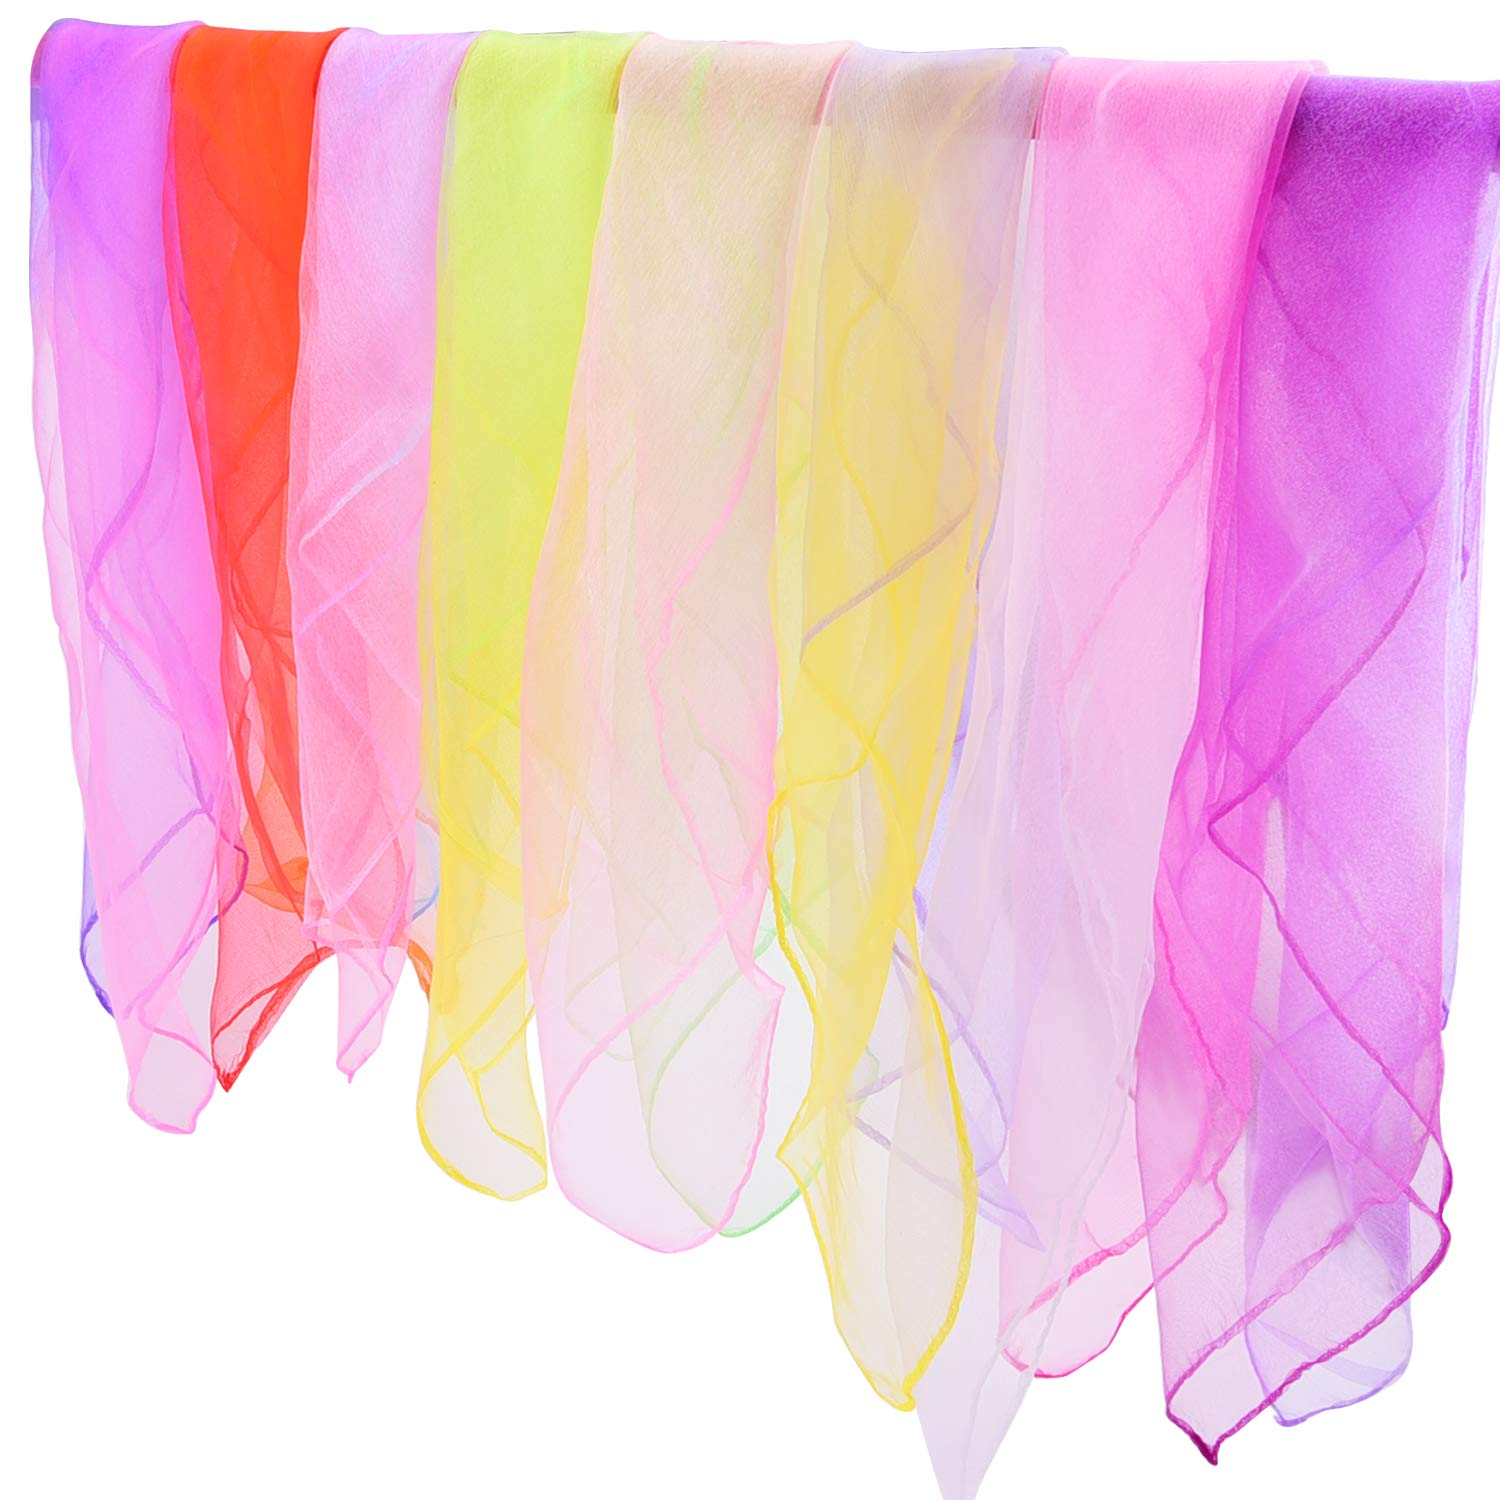 24 by 24 Inches Gradient Colors Square Juggling Silk Magic Performance Props Accessories Hair Neck Bag Waist Wrist Band Scarf Livder 16 Pieces Dance Scarves